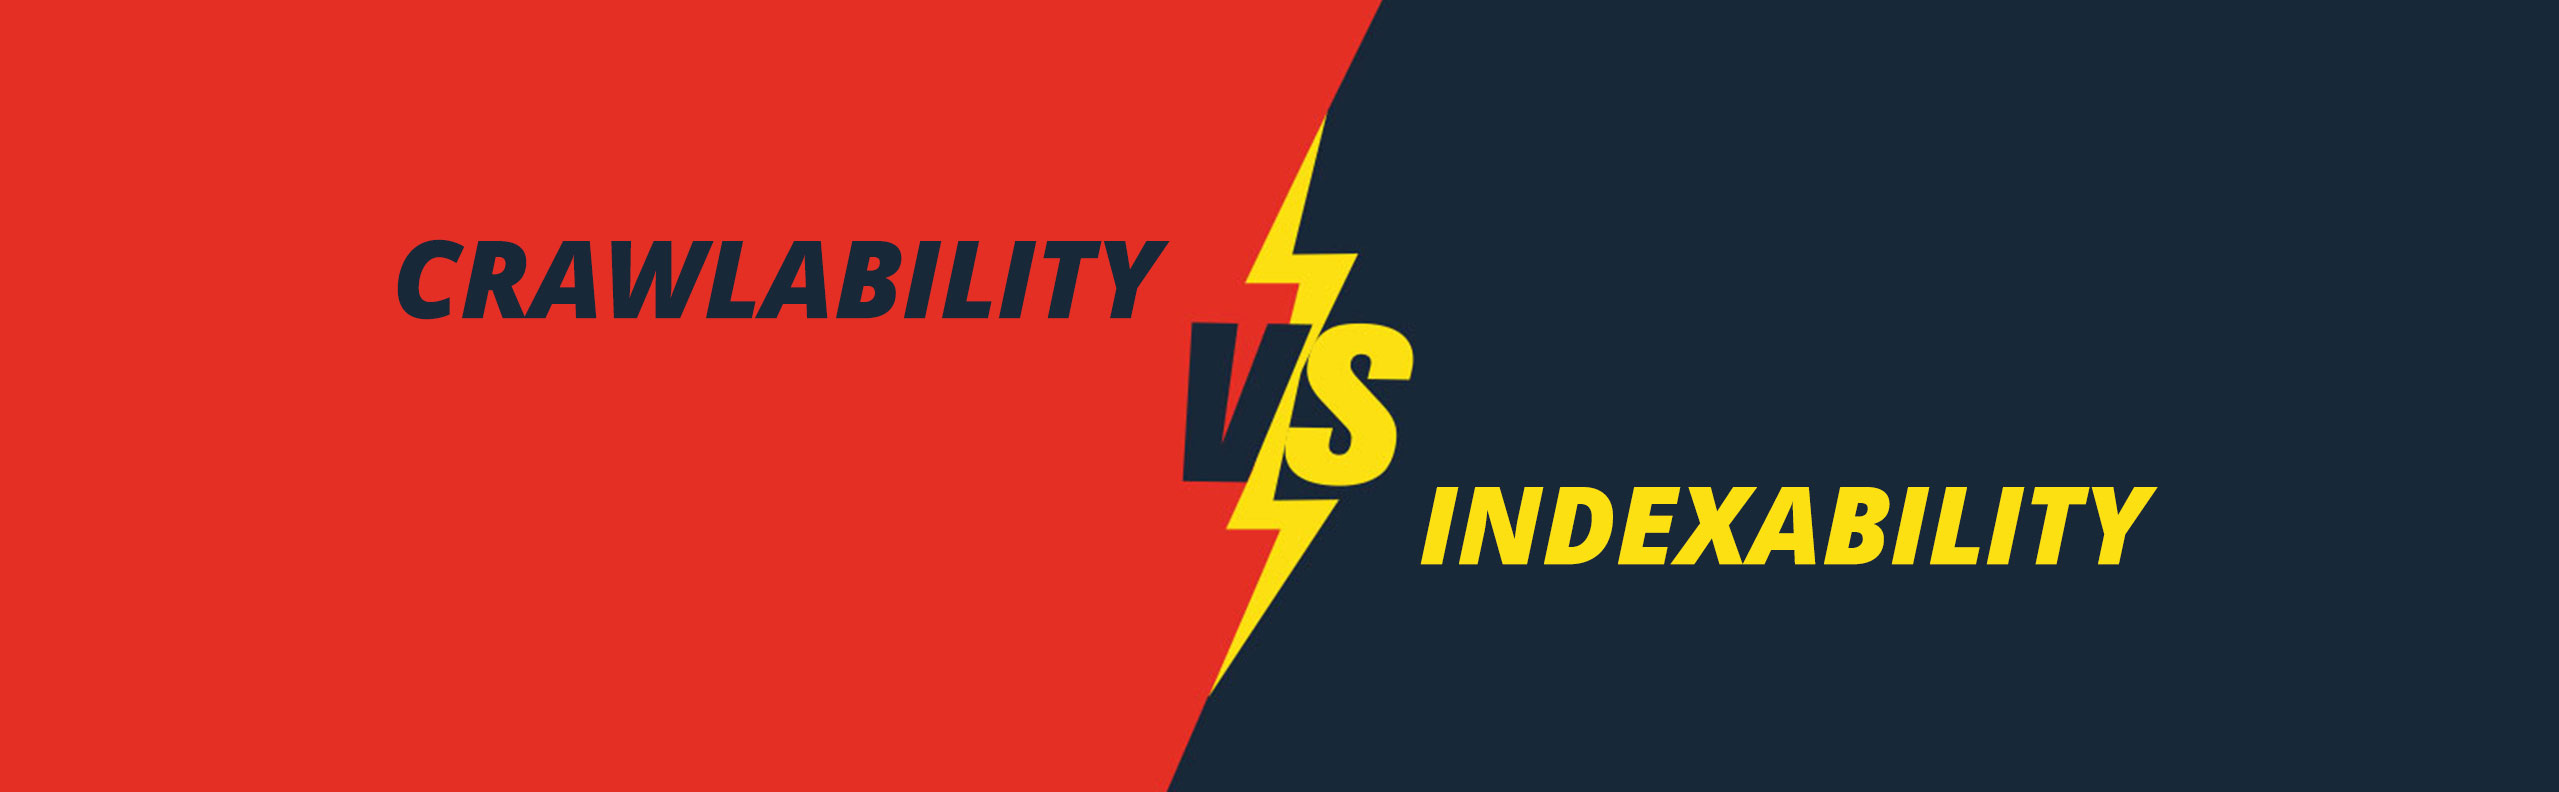 Crawlability vs. Indexability: The Affect on SERP Rankings